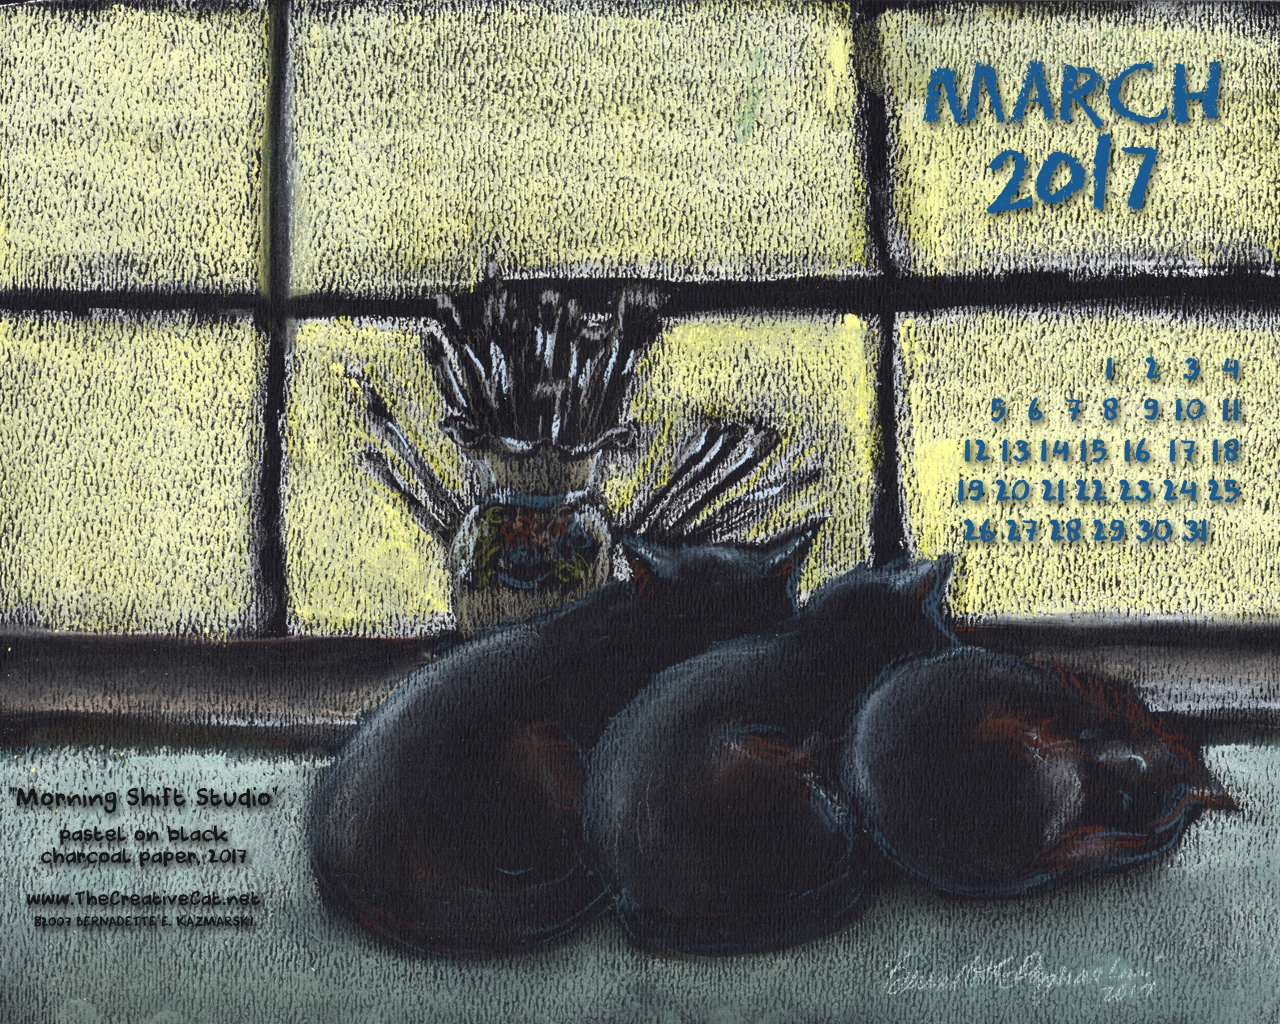 March Feline Desktop Calendar Wallpaper